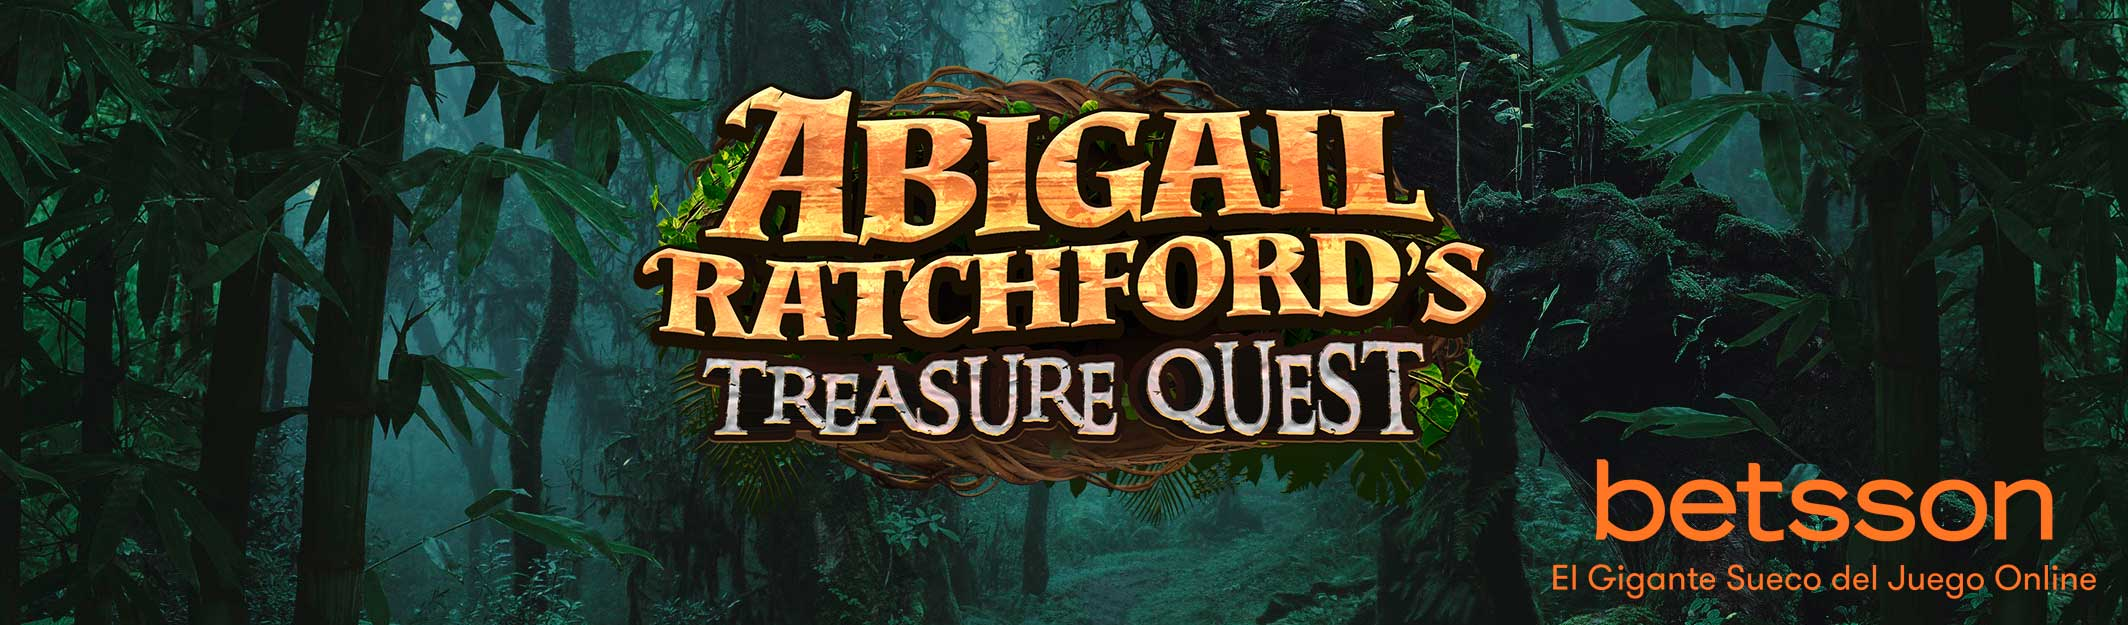 ABIGAIL RATCHFORD'S TREASURE QUEST, vive la mayor aventura de tu vida